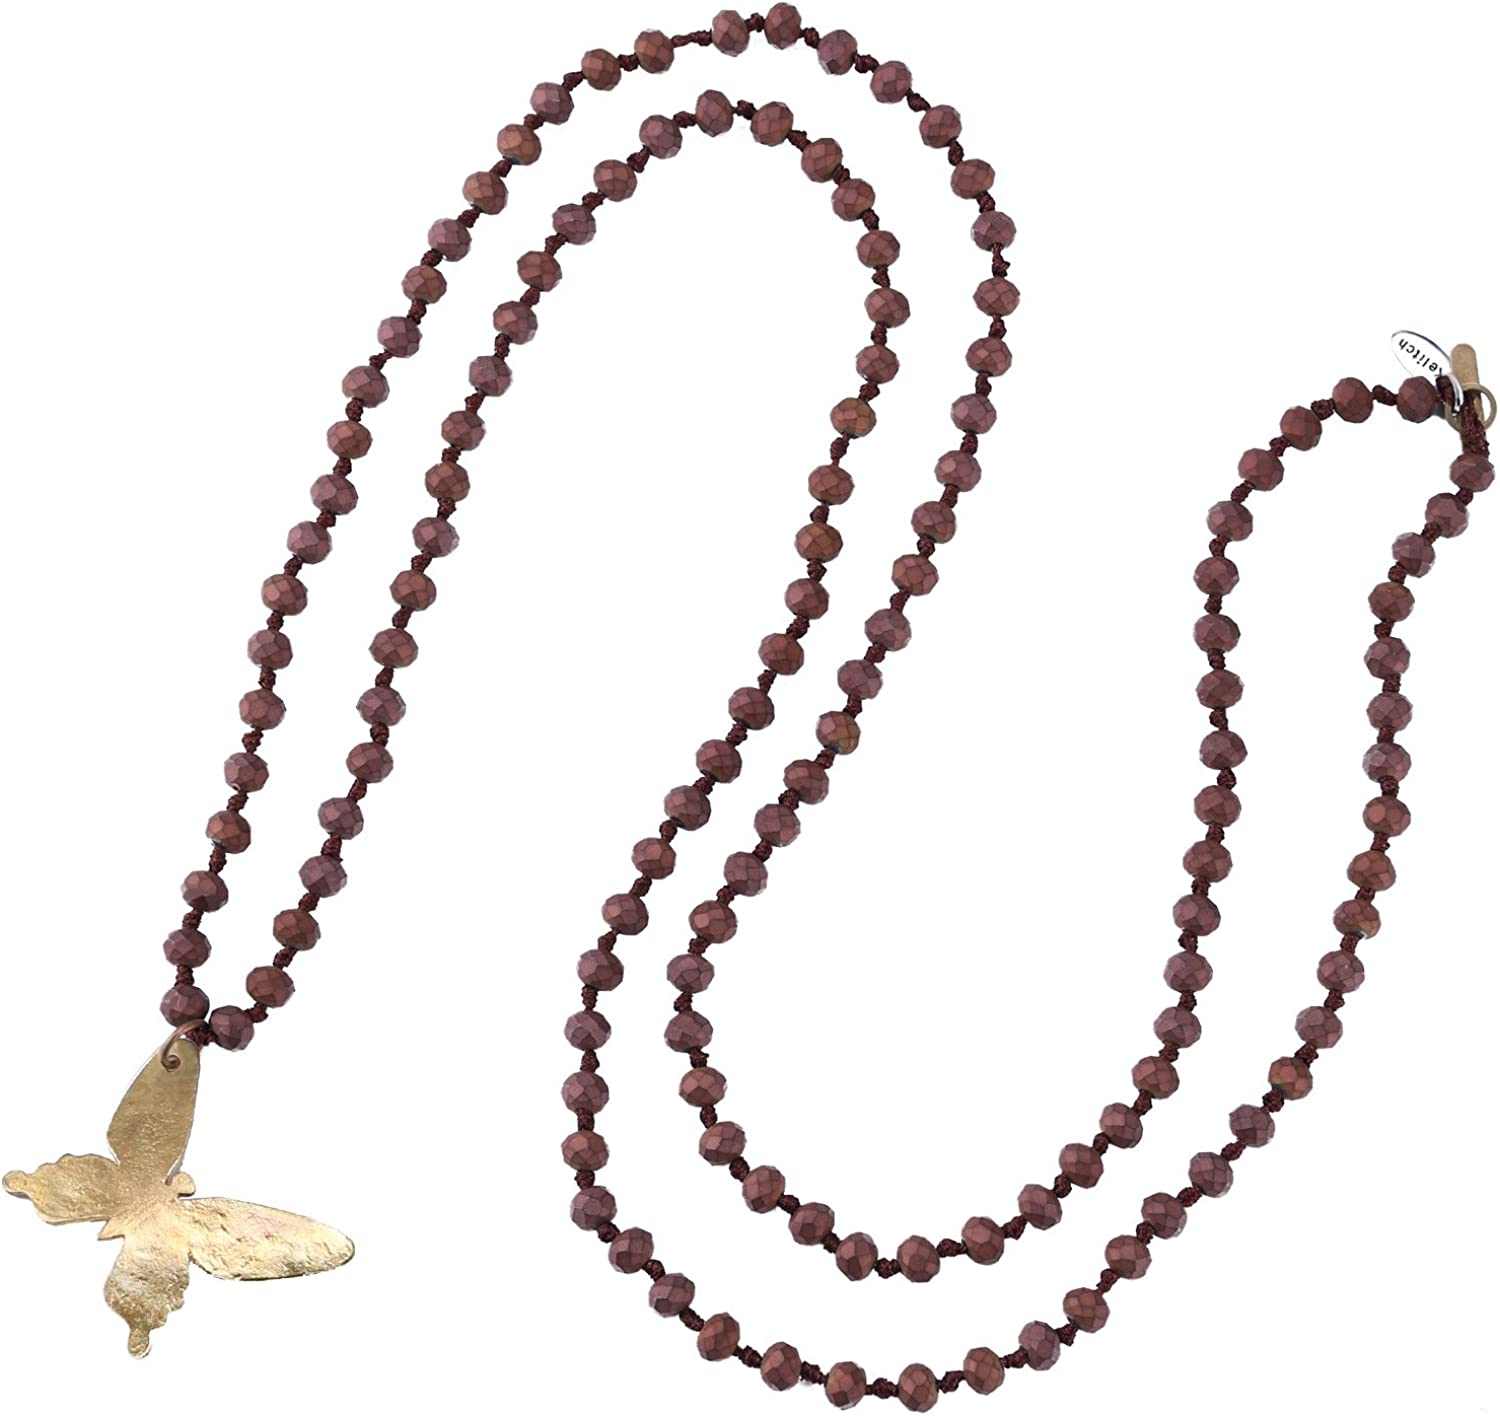 KELITCH Crystal Beaded Necklaces Hand Crafted Long Strand Necklace Agate Pendant Necklaces